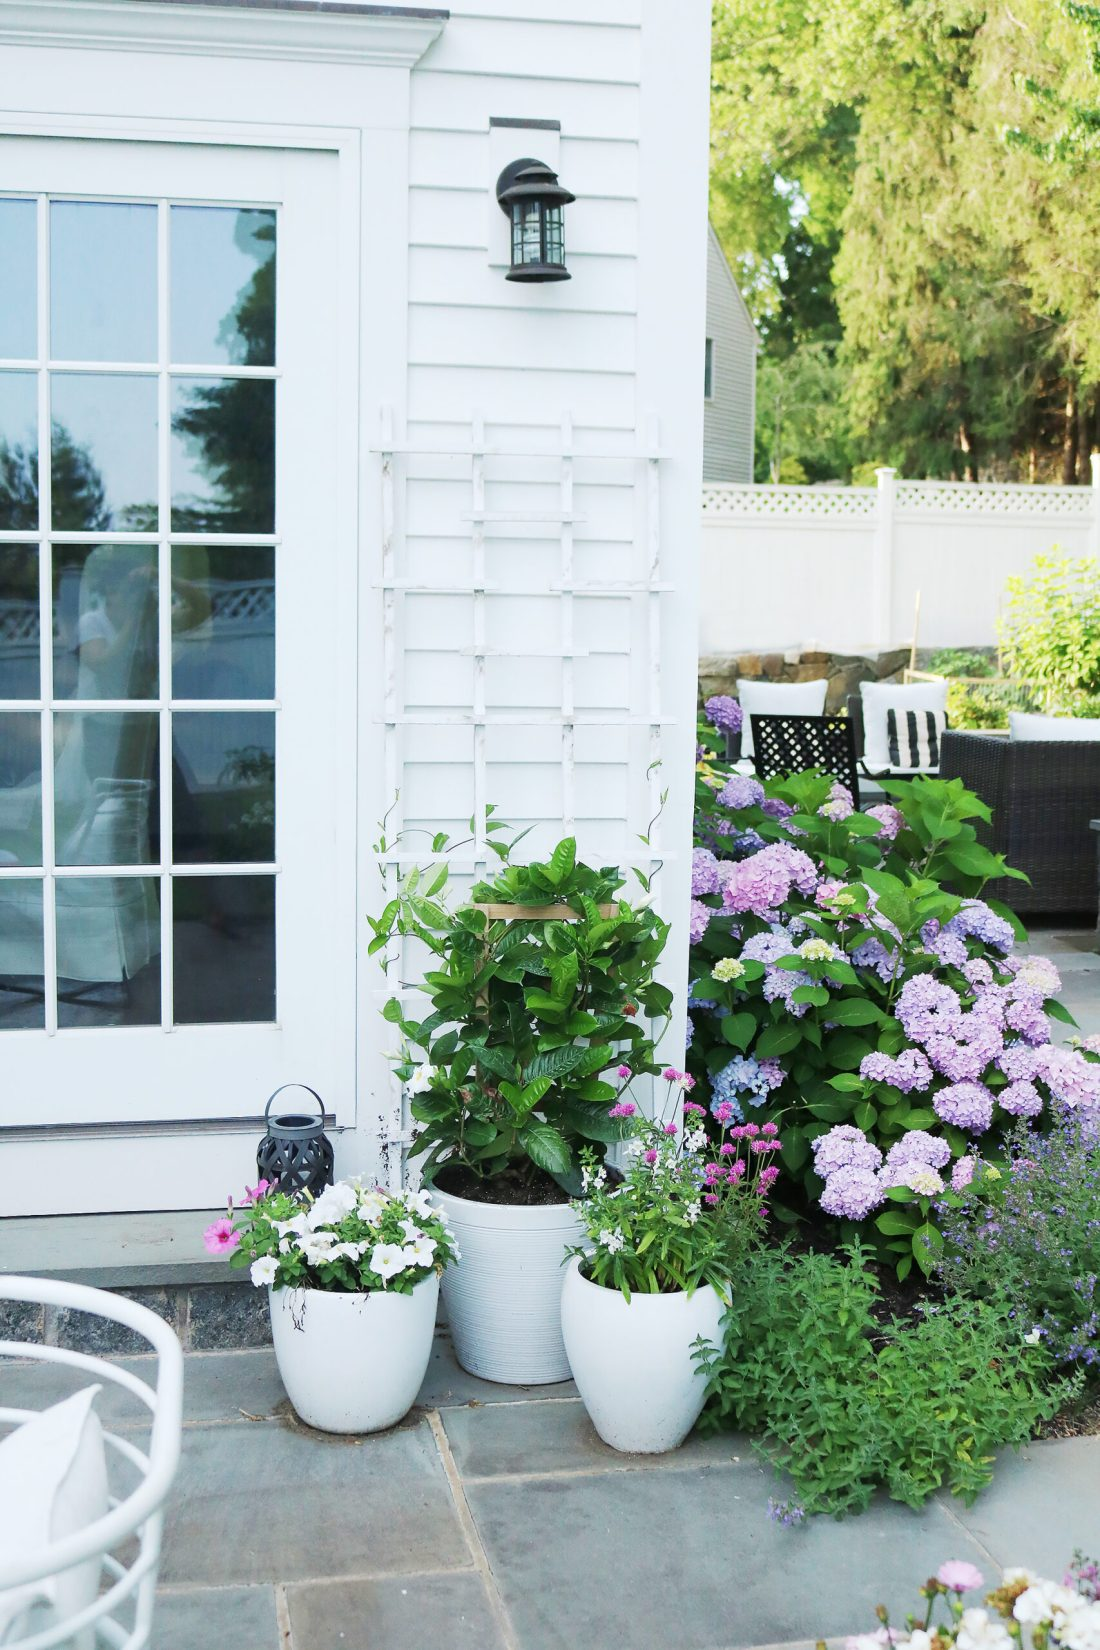 Making the best of your outdoor space with these last minute tips for outdoor living || Darling Darleen Top CT Lifestyle Blogger #outdoorliving #outdoorfurniture